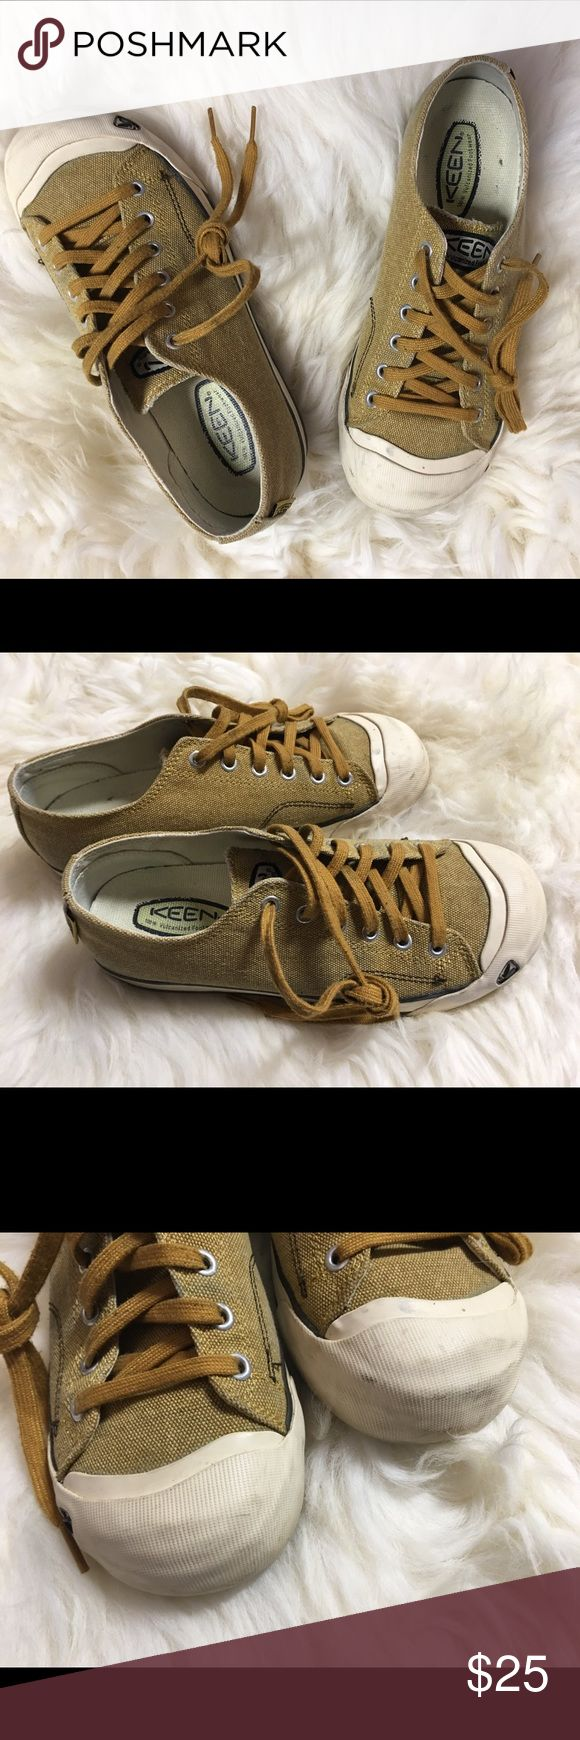 Keen shoes Tan Canvas Keen shoes.  Worn, but still in good condition with lots of life left!!!  Canvas with white rubber toe. Keen Shoes Flats & Loafers